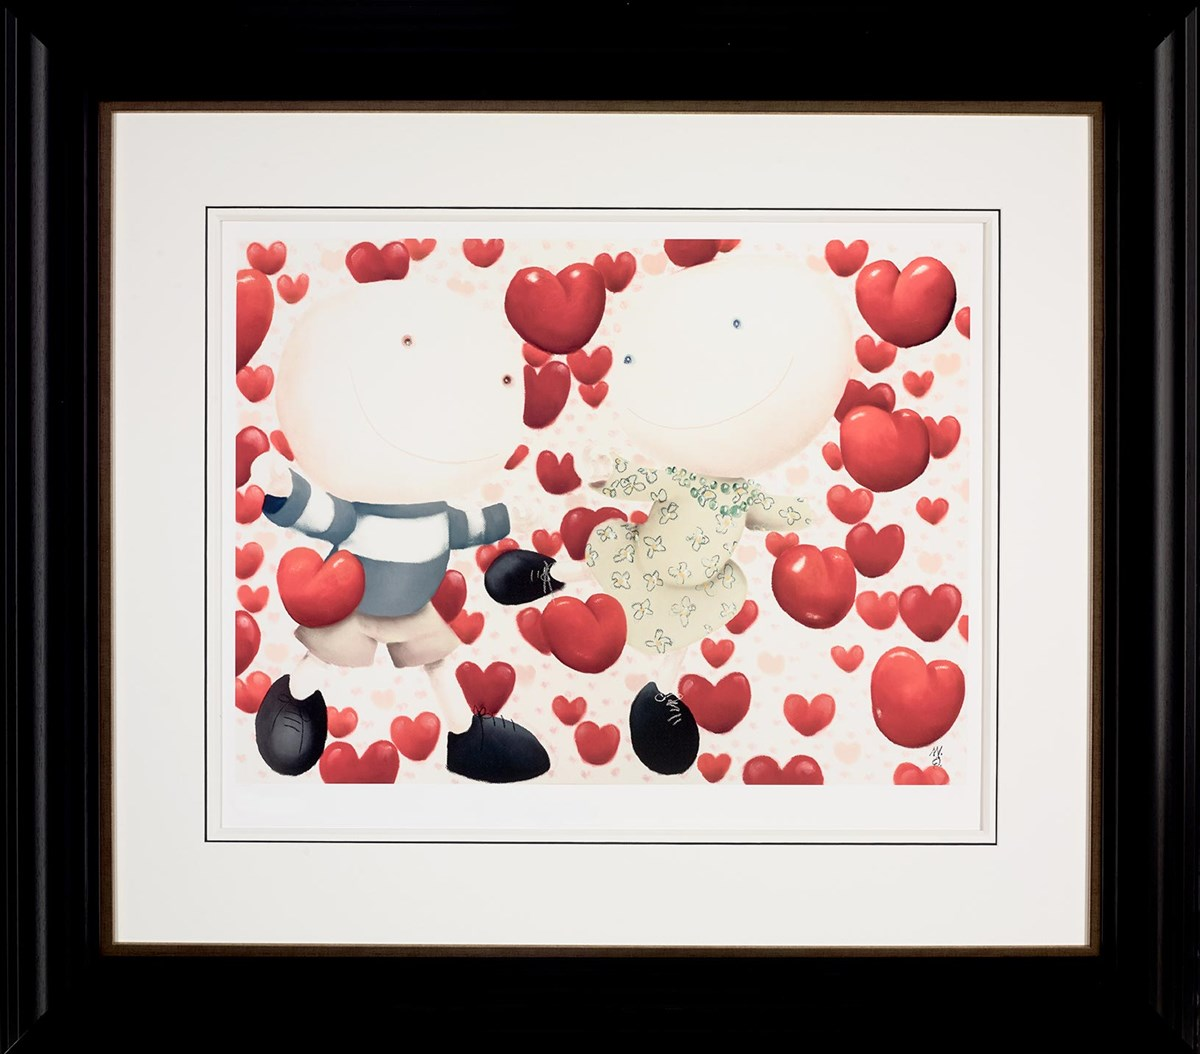 Dancing In Love - Framed by Mackenzie Thorpe